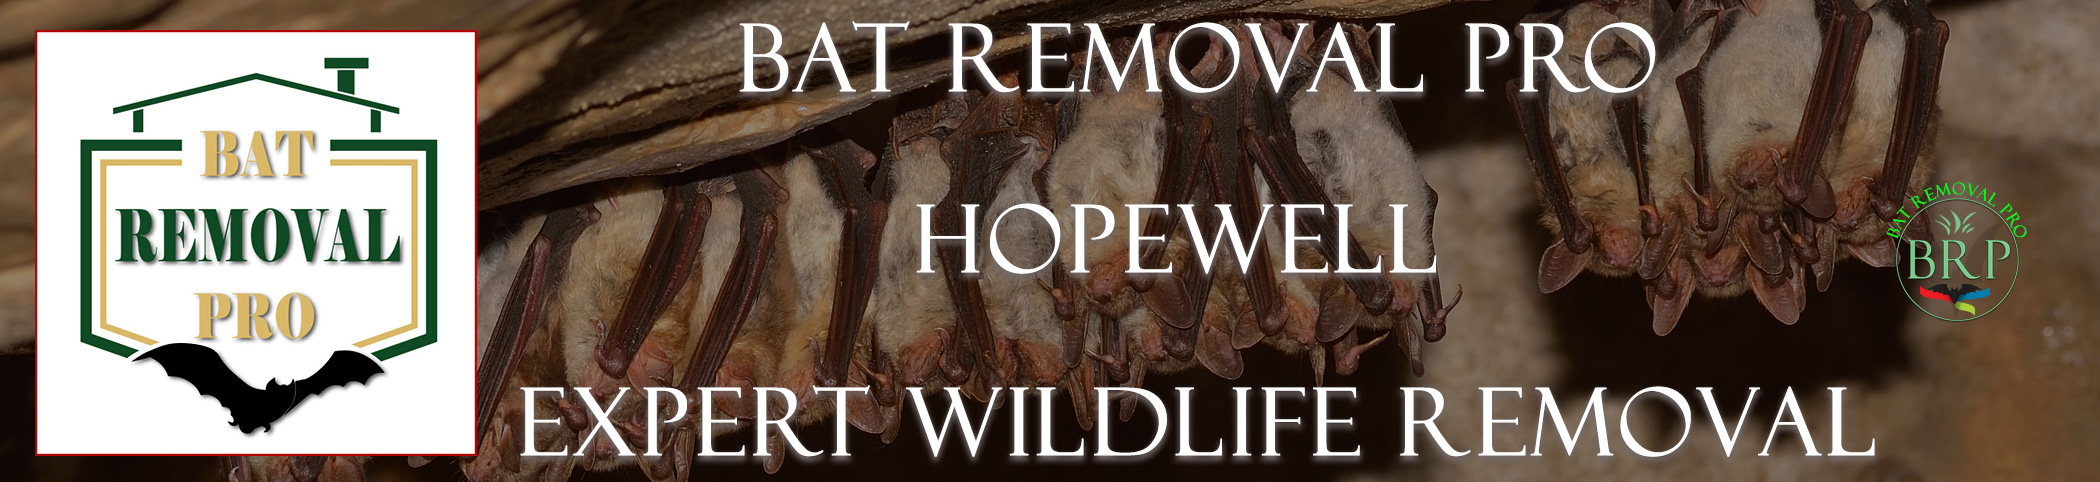 HOPEWELL-bat-removal-at-bat-removal-pro-header-image